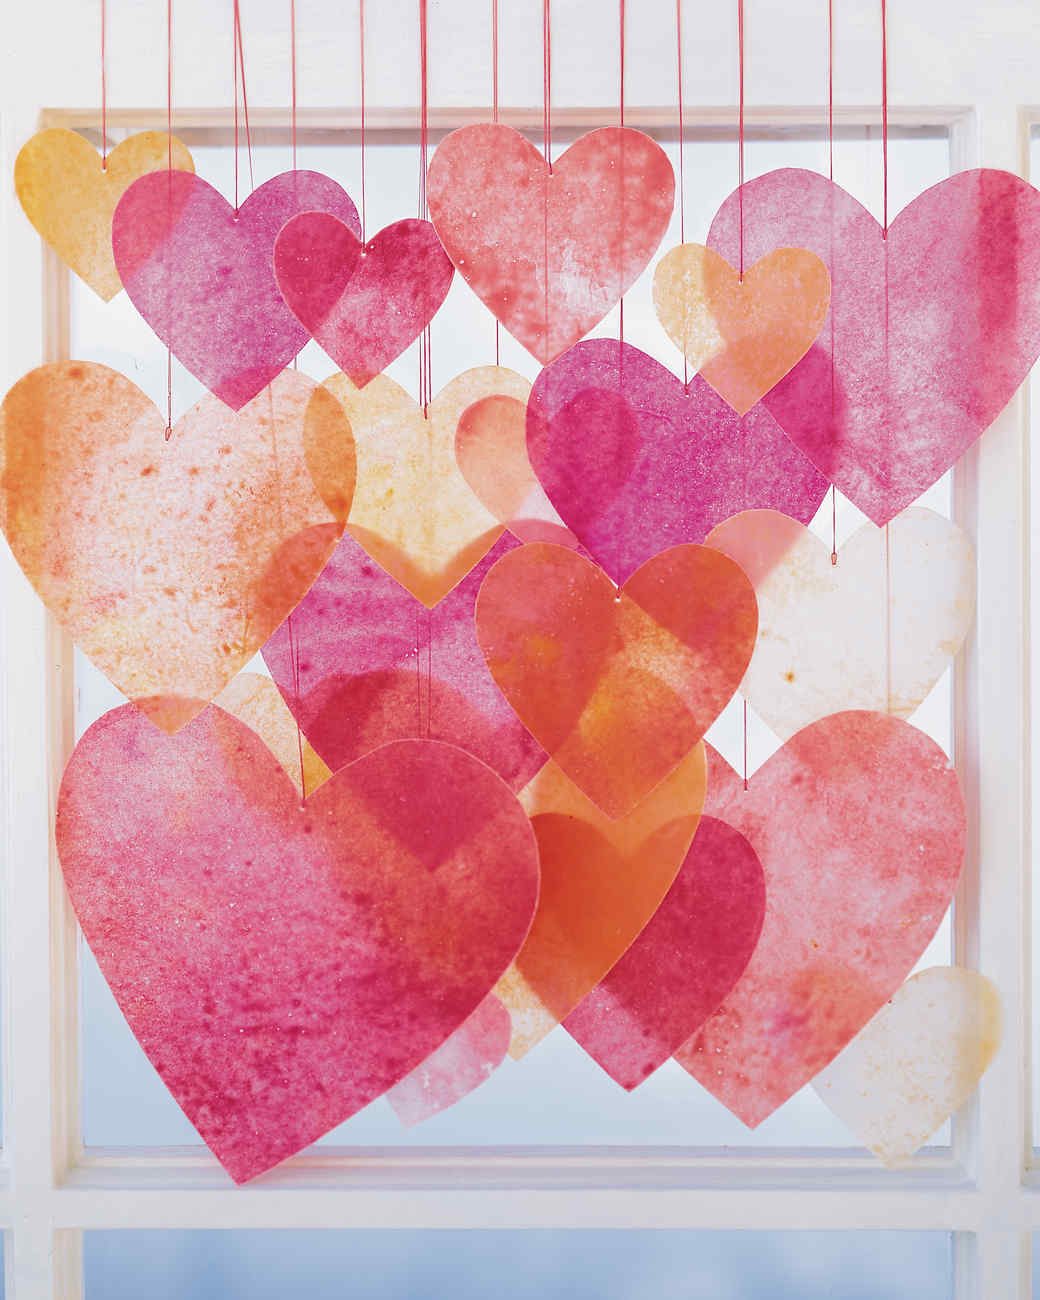 37 Valentine's Day Crafts to Make From the Heart